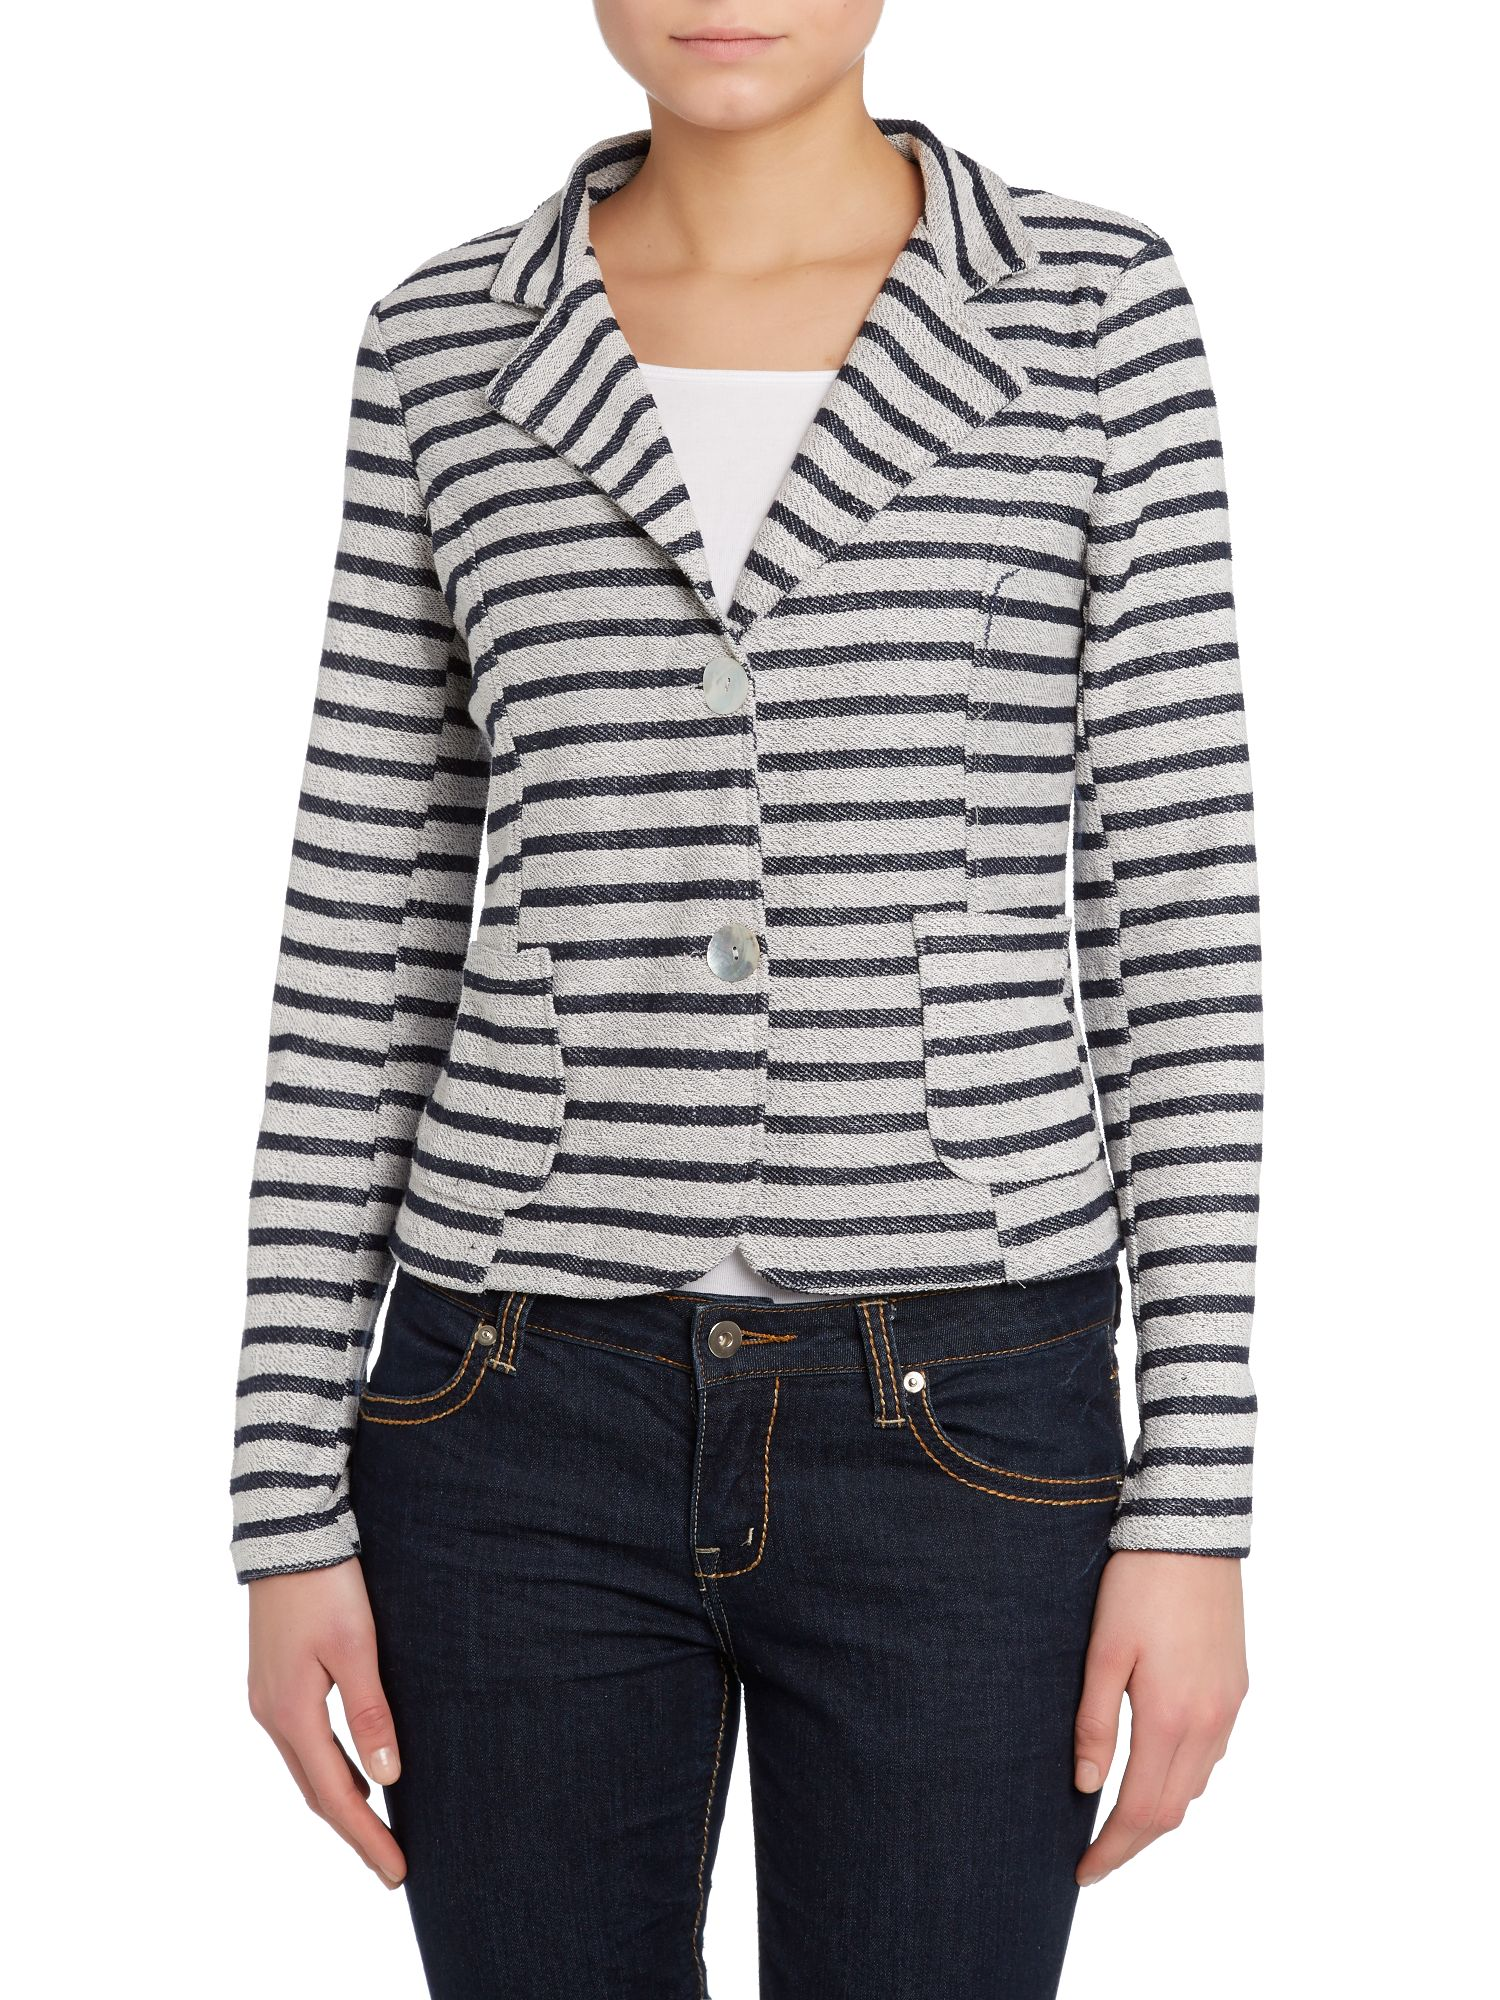 Horizontal striped blazer